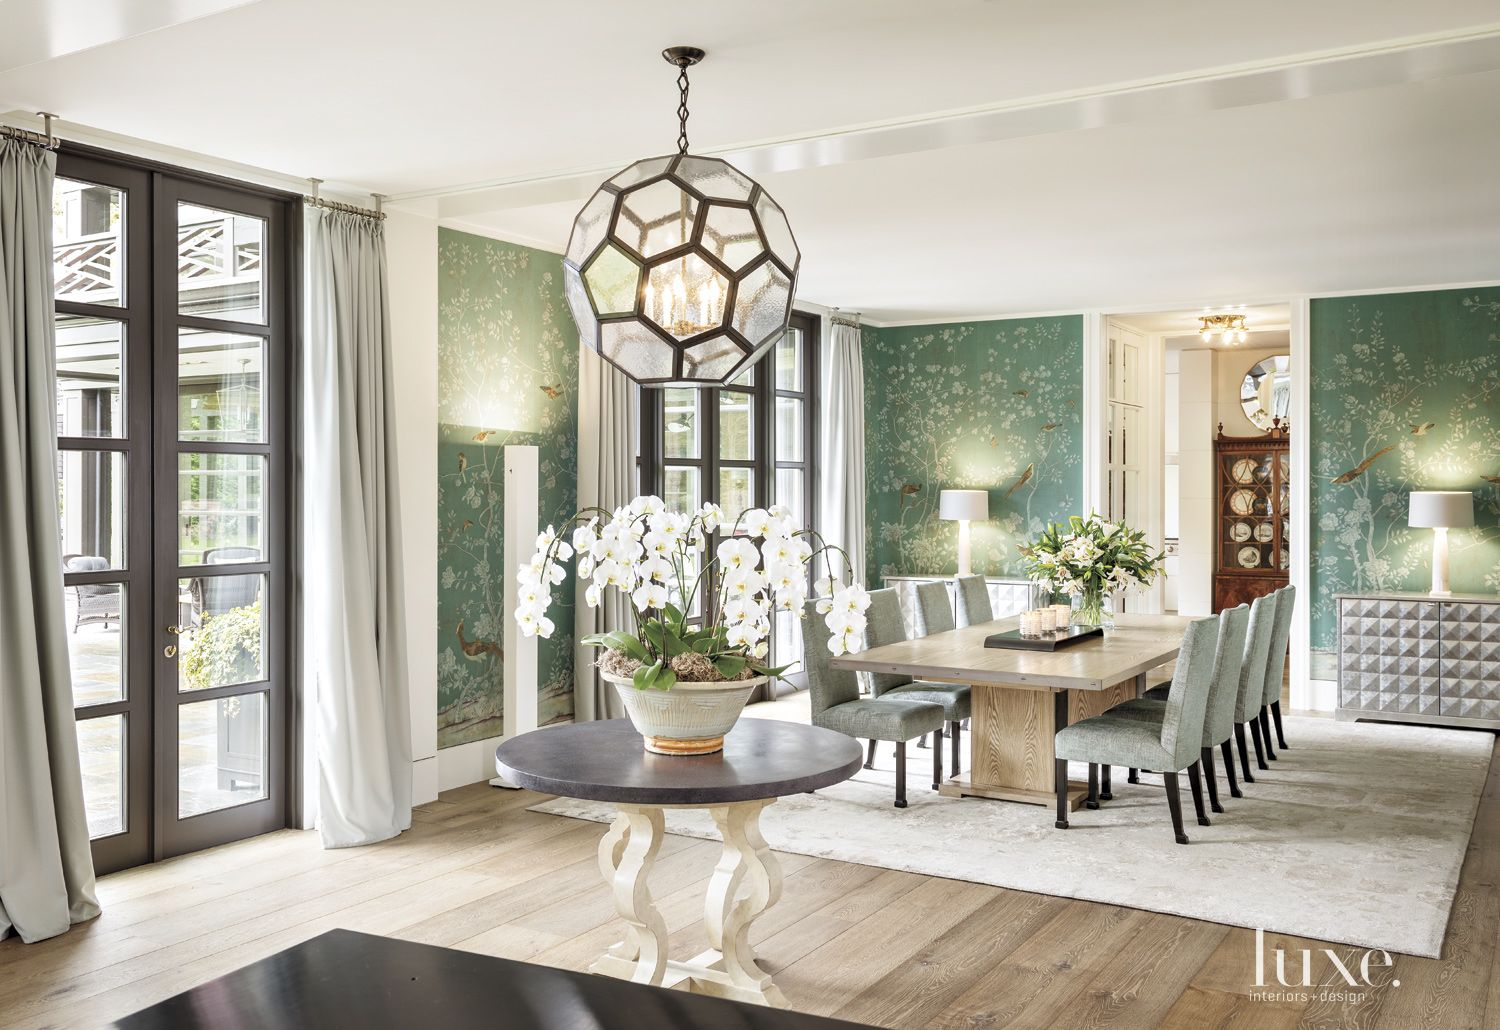 Contemporary White Dining Room with Handpainted Wallpaper